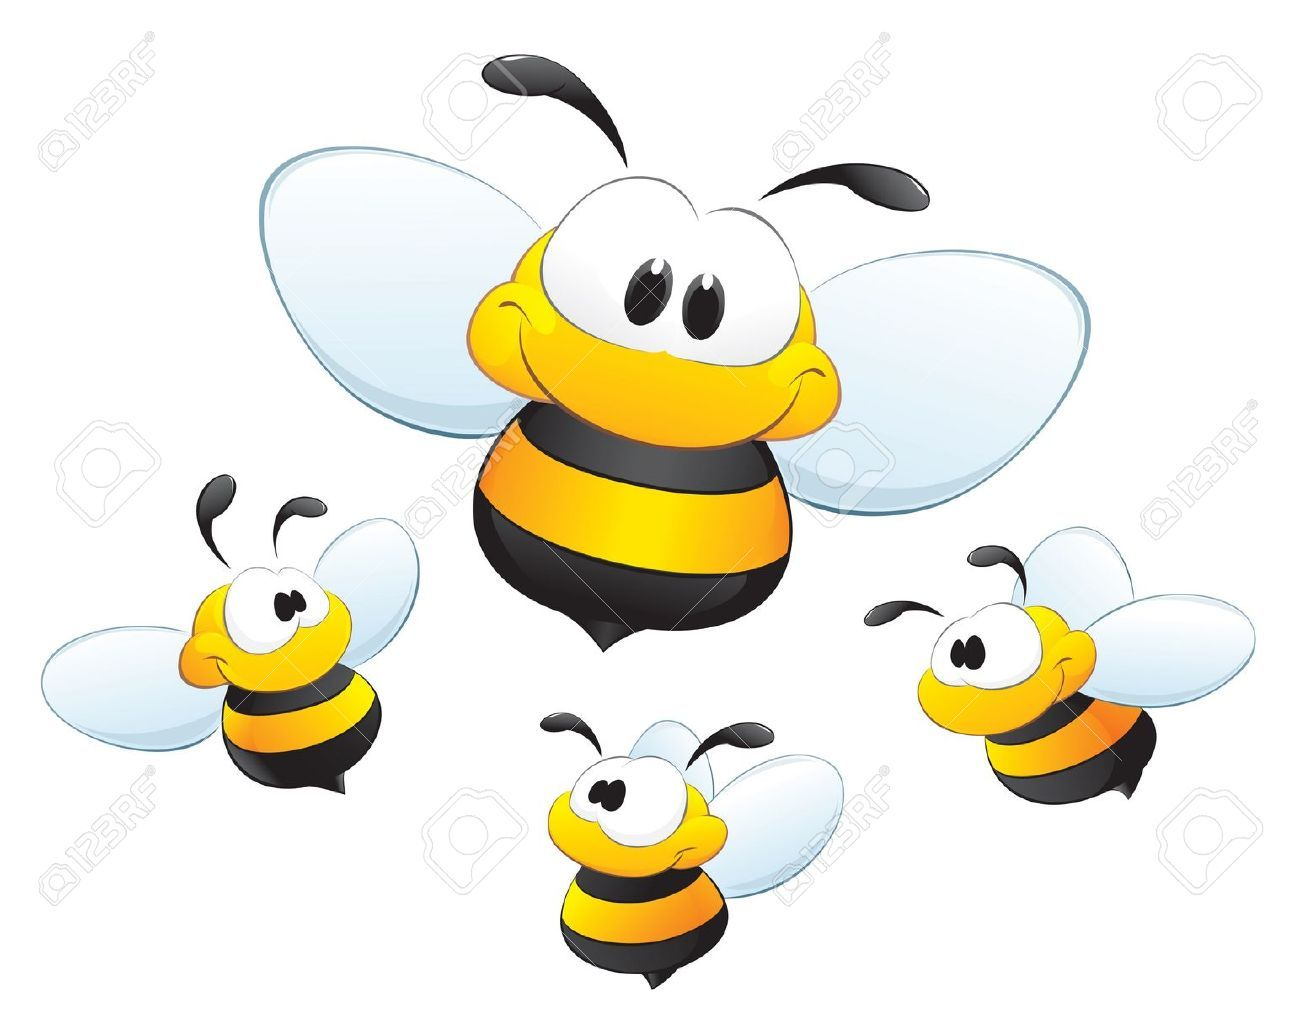 cute cartoon bees for design element royalty free cliparts